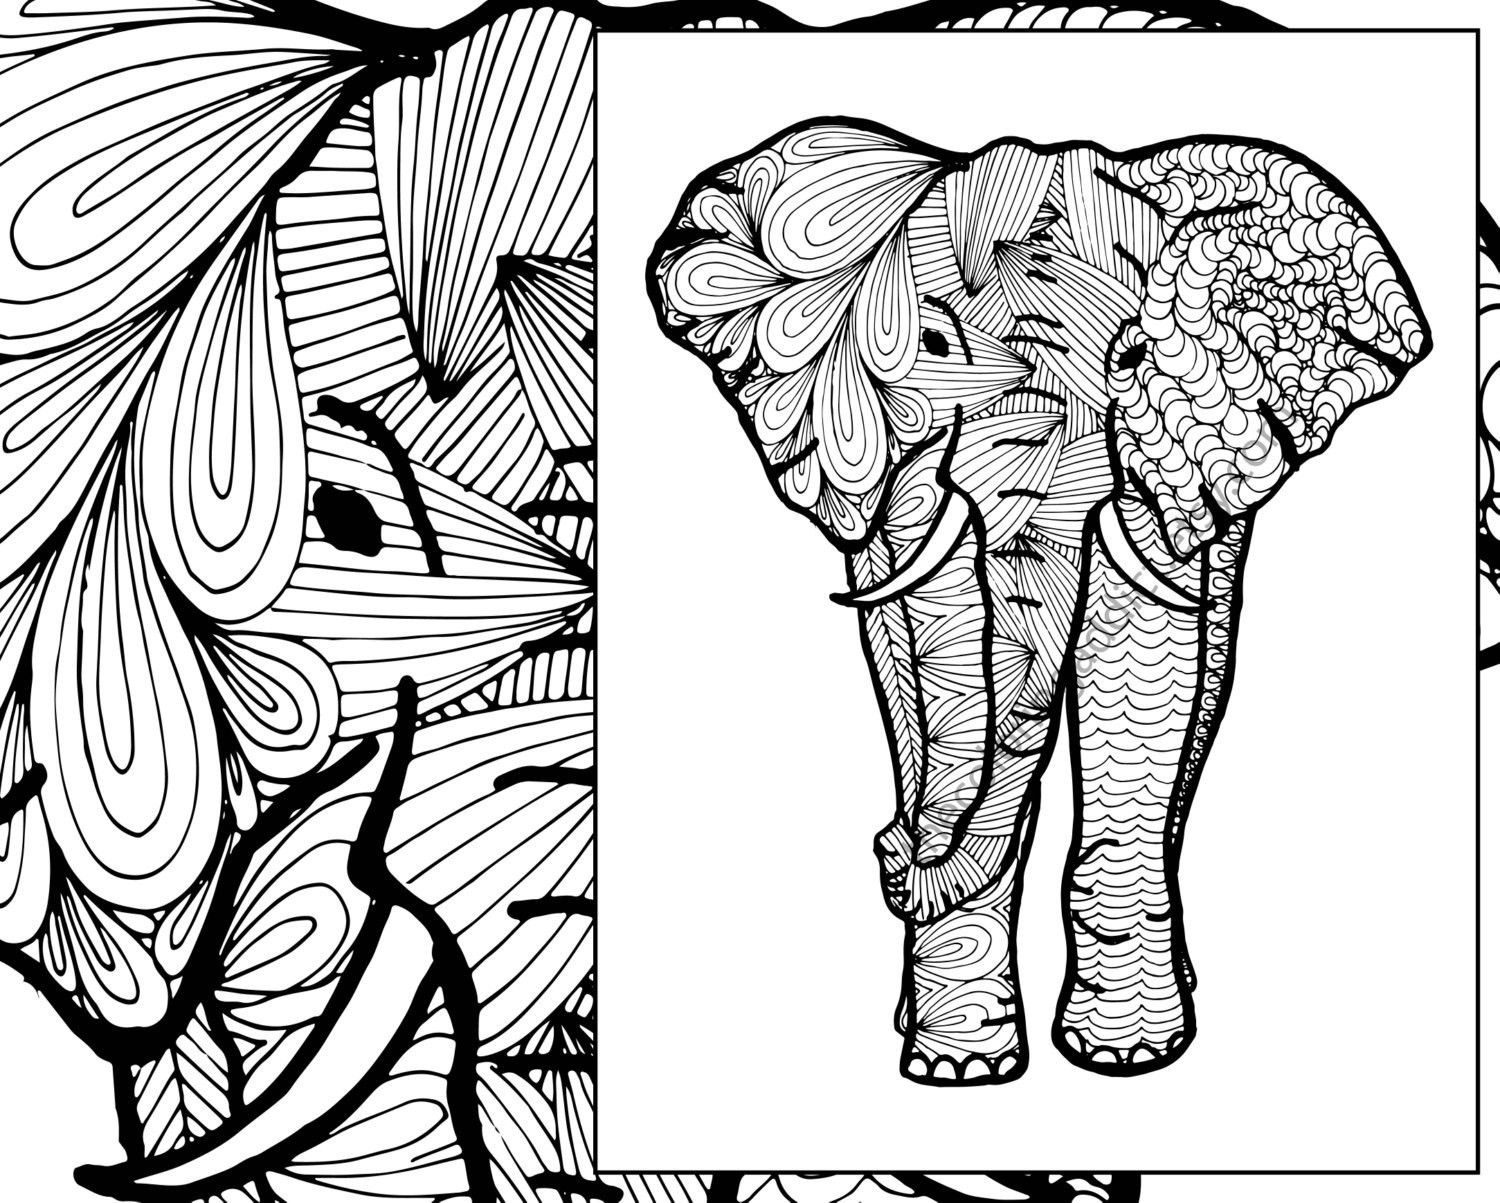 Pagine Da Colorare Per Animali Tribali: Tribal Coloring Pages